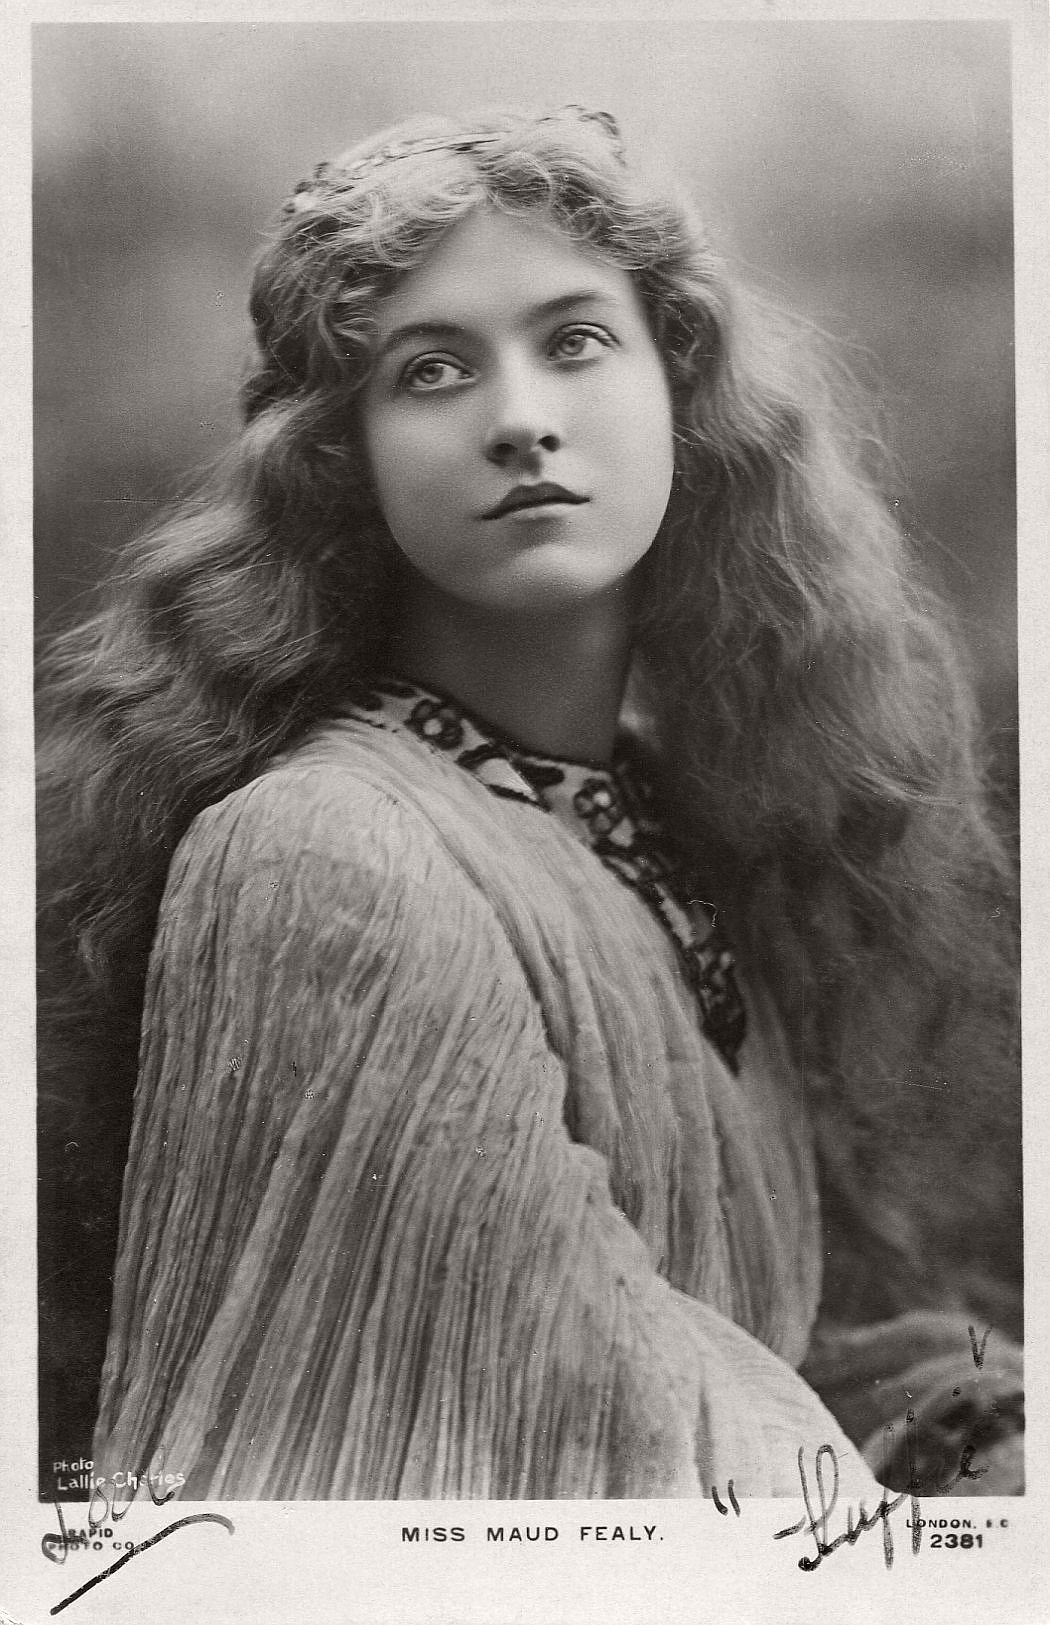 vintage-postcard-of-actress-miss-maude-fealy-1900s-early-xx-century-19